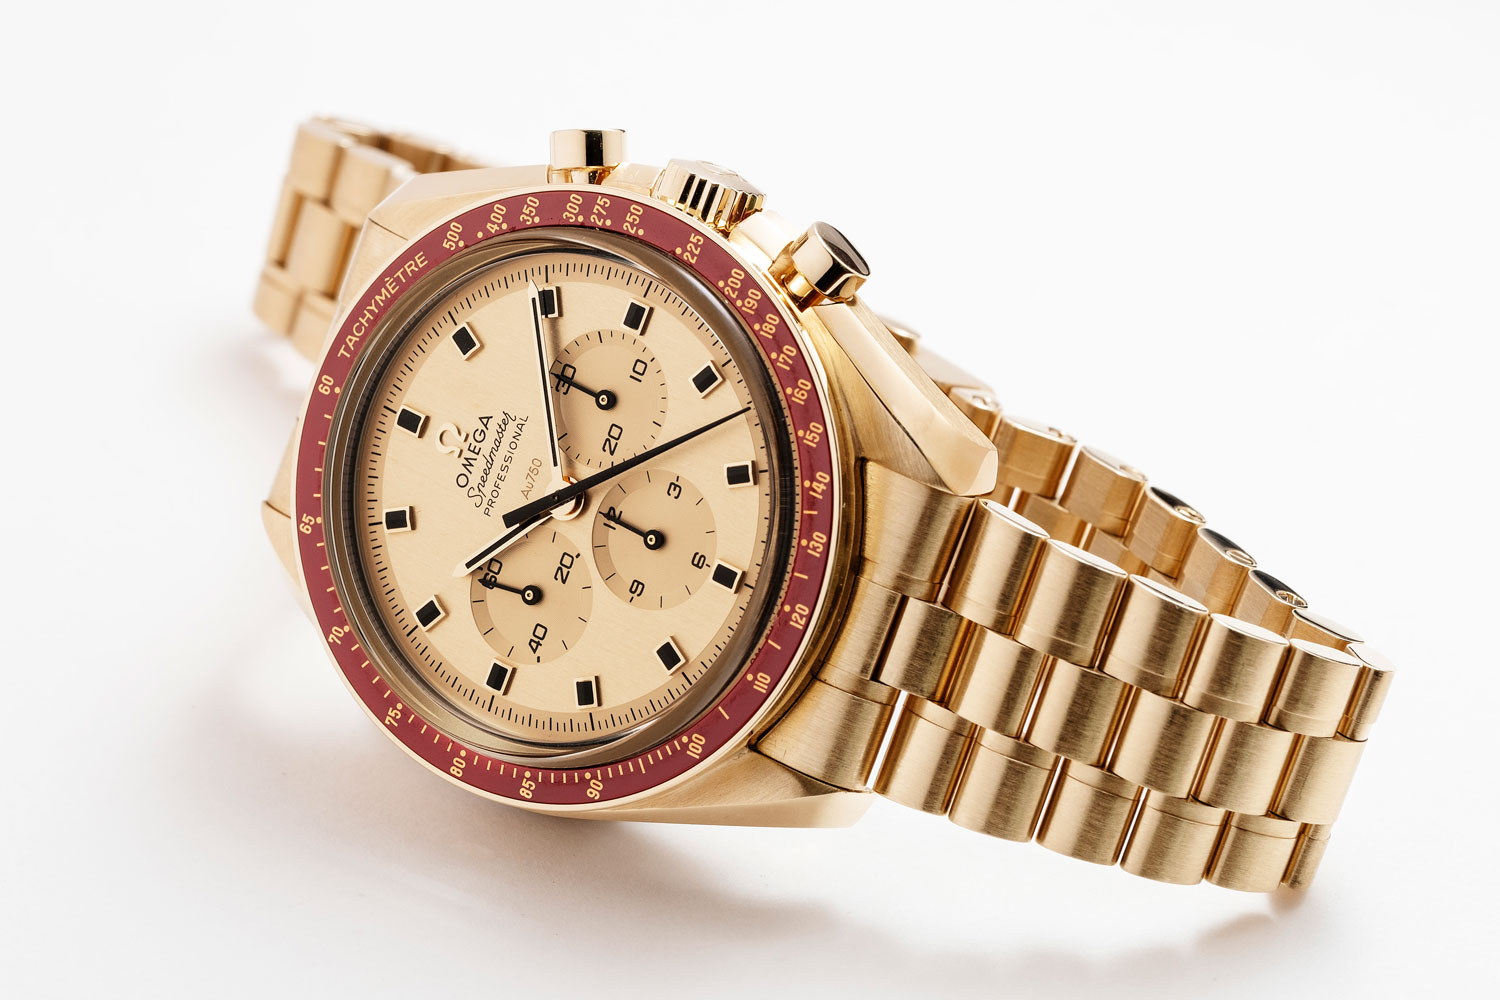 Speedmaster Apollo 11 50th Anniversary Limited Edition in Moonshine™ Gold (Image © Revolution)